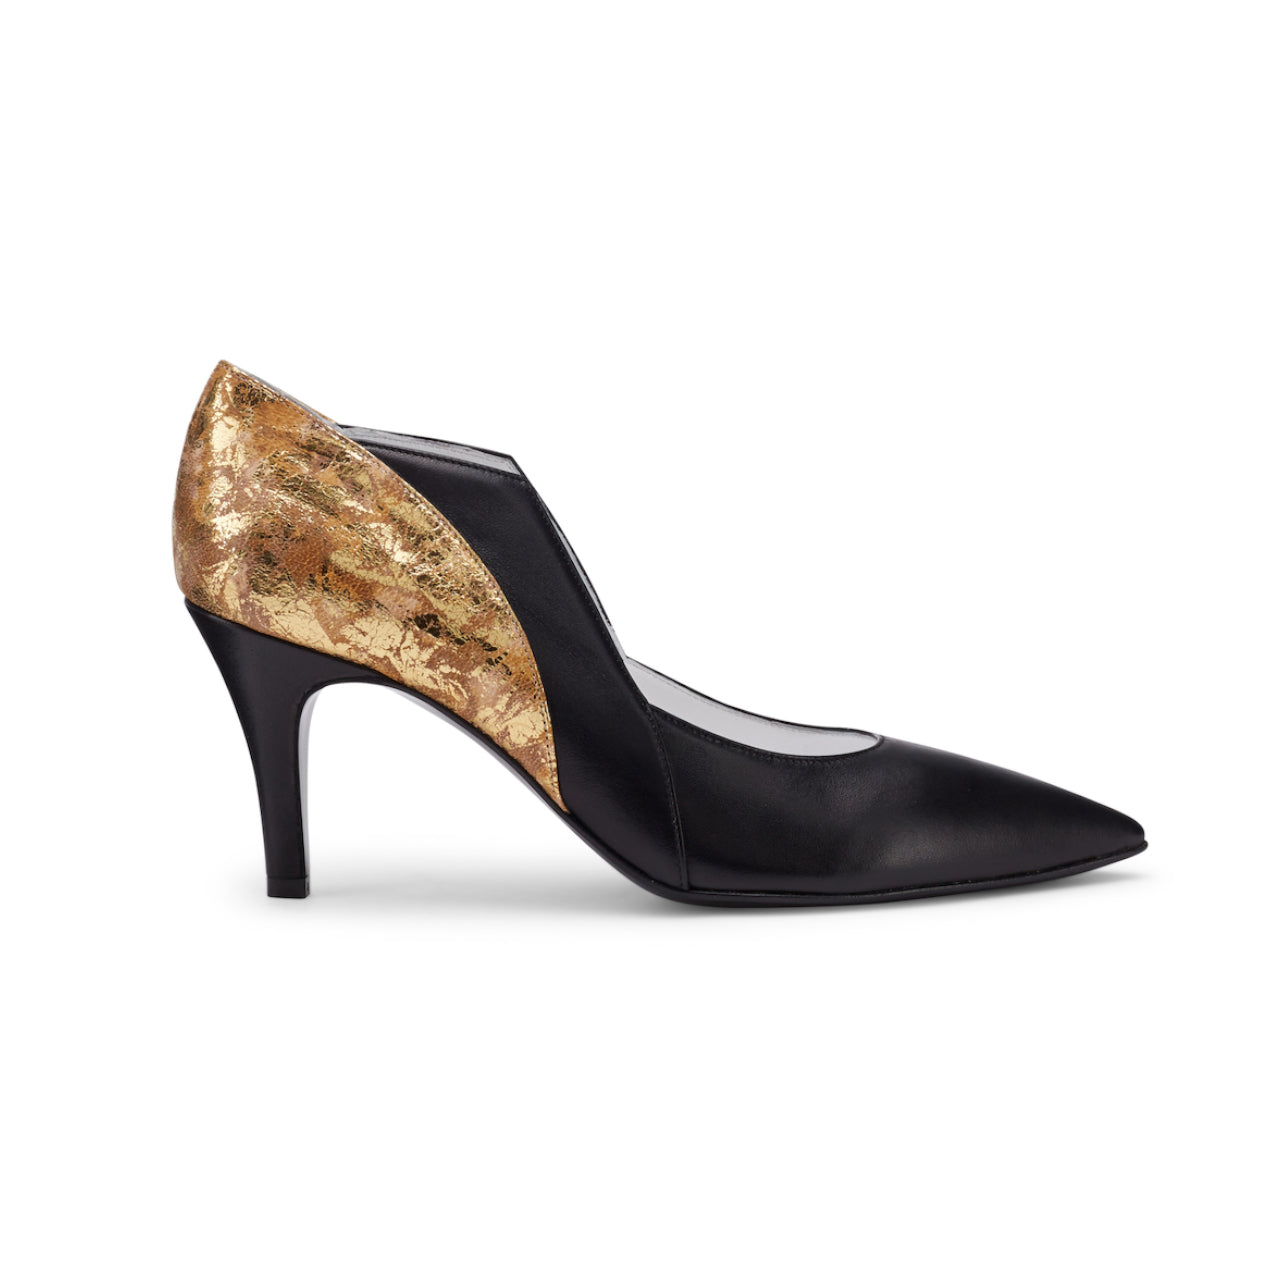 Intramontabile Footwear - Pumps SOLE schwarz/gold